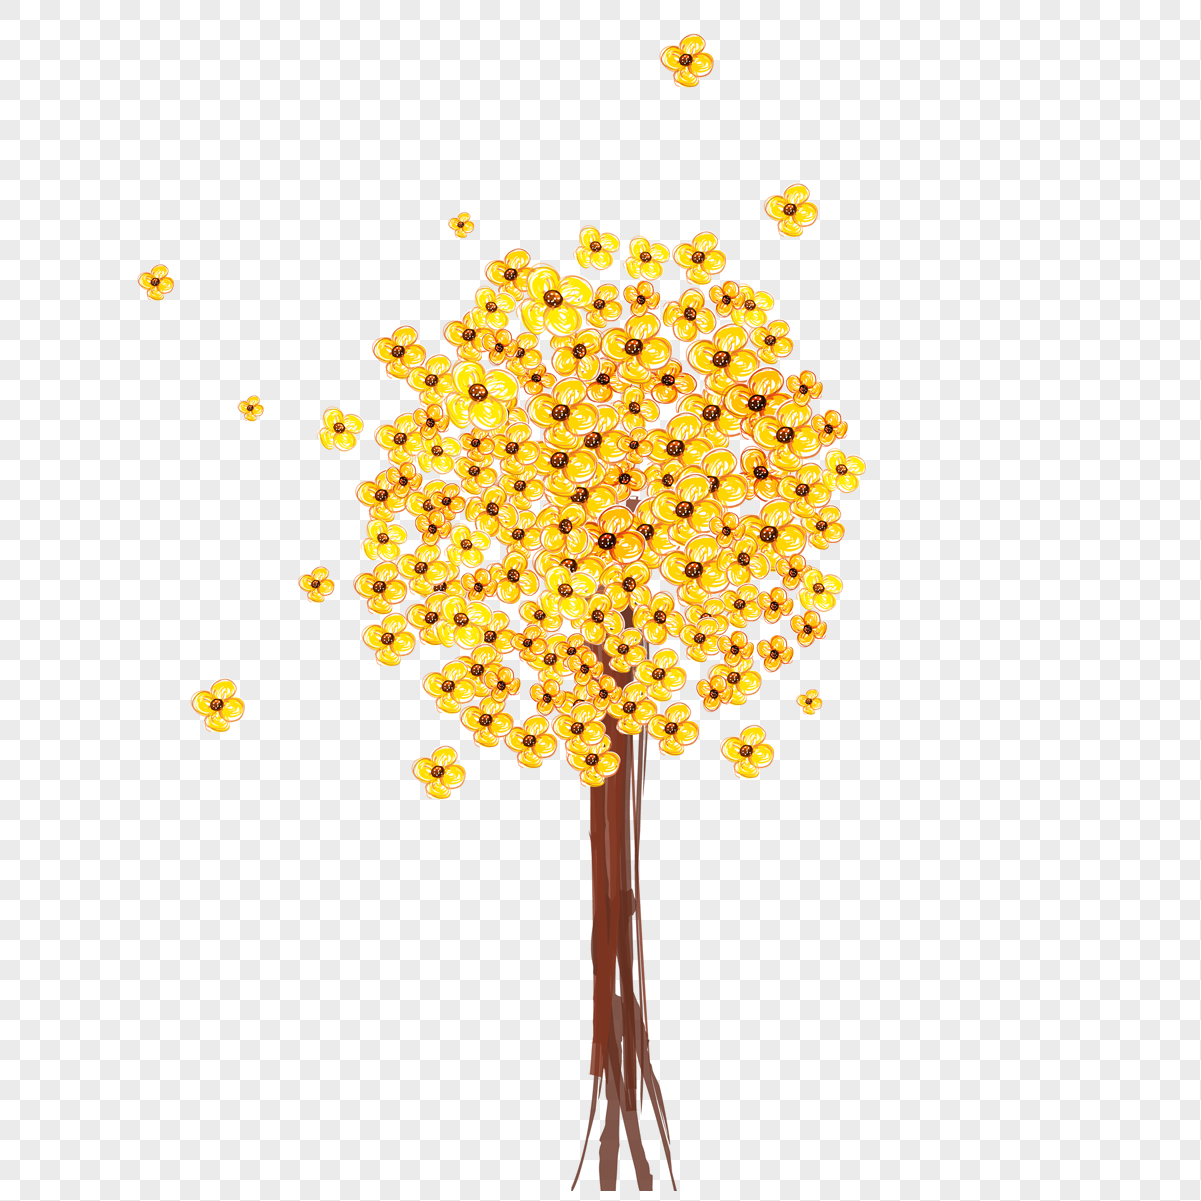 Yellow Flower Crayon Drawing Png Imagepicture Free Download